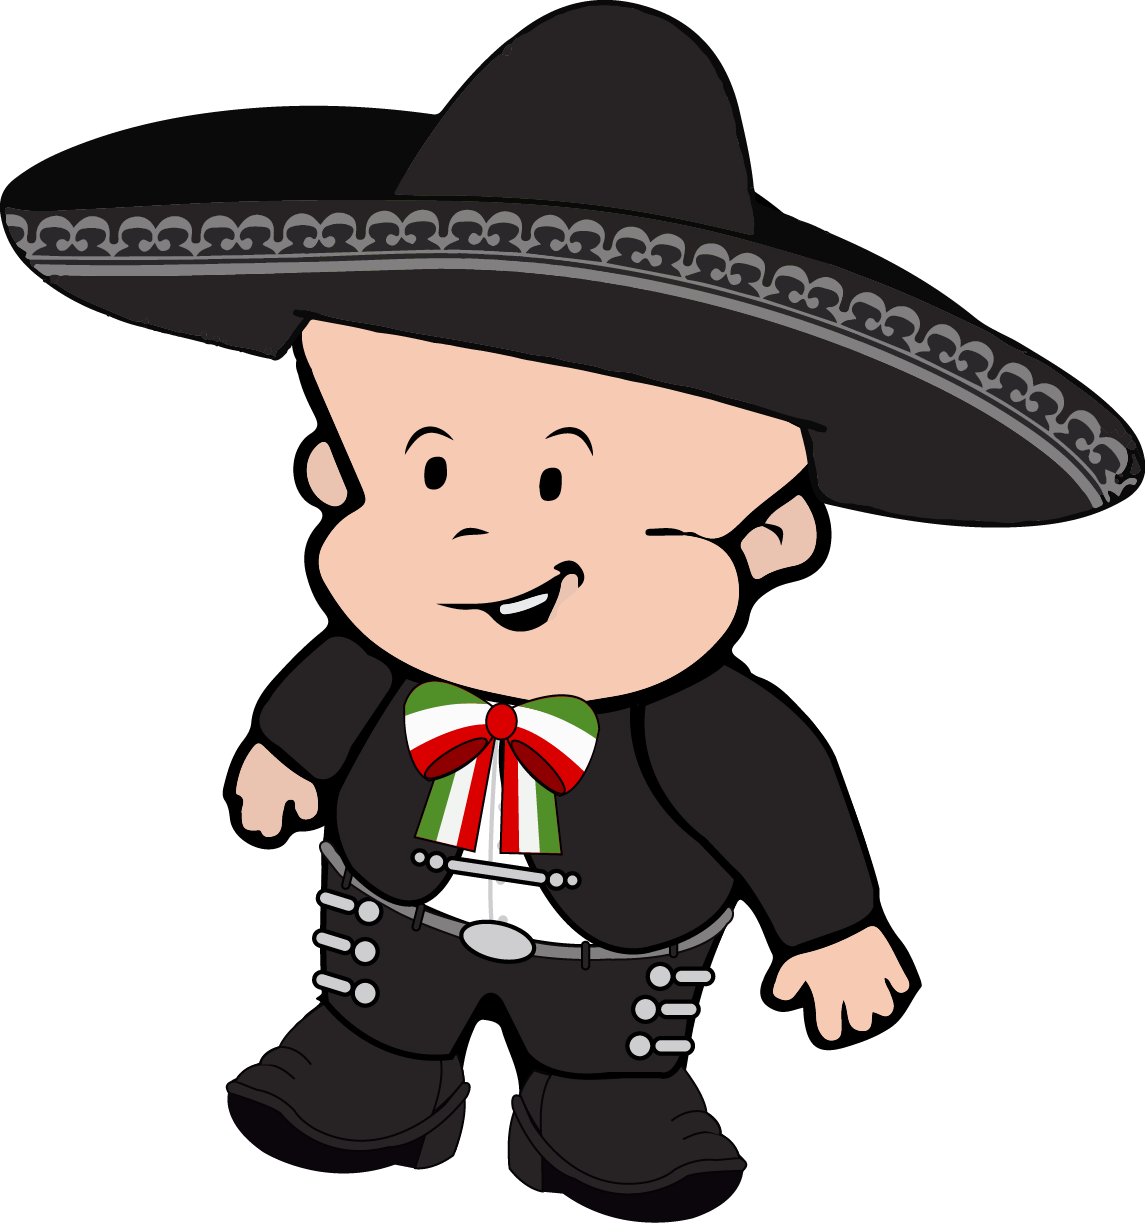 1145x1223 Sombrero Clipart Charro For Free Download And Use In Presentations